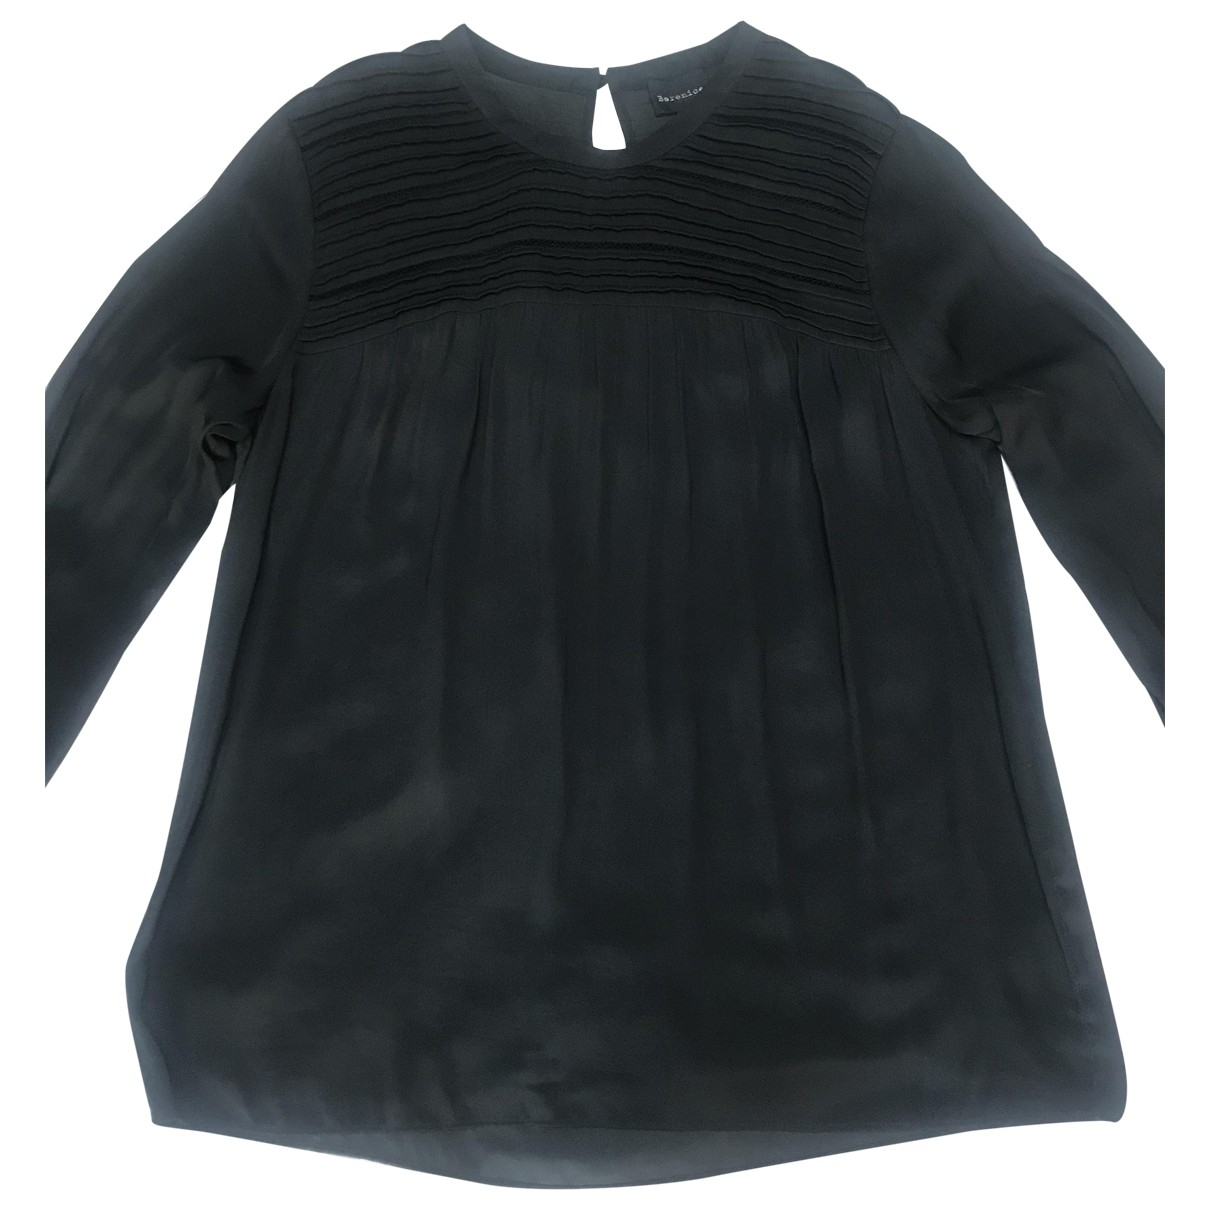 Berenice \N Black  top for Women 36 FR